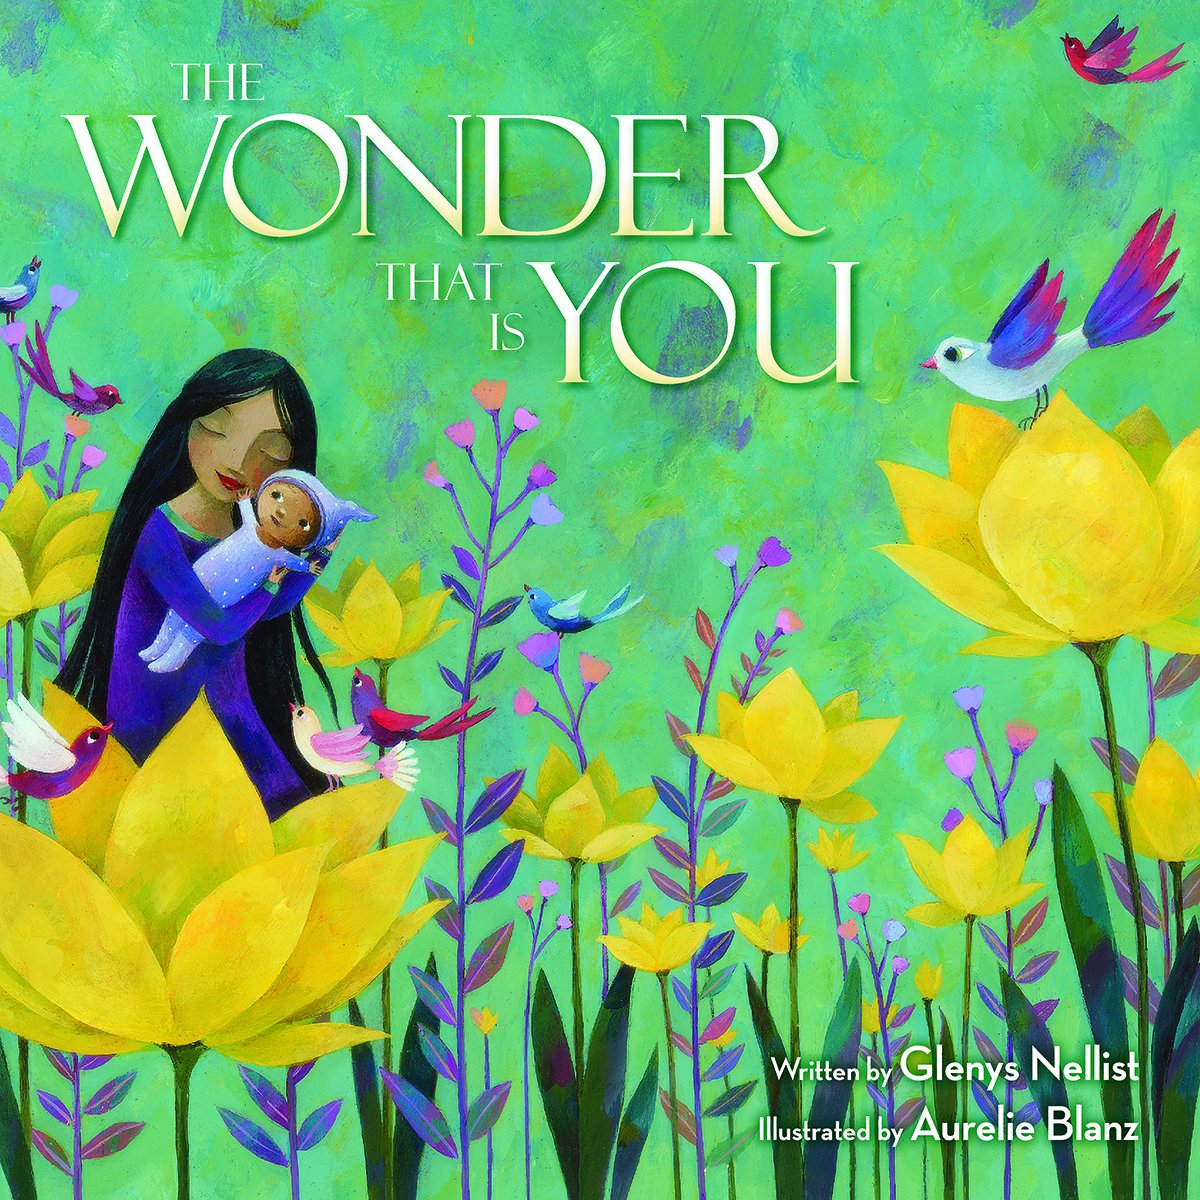 @MidwestBooks Excited to be attending my first Heartland Fall Forum this Friday to meet Indie booksellers & sign copies of The Wonder That is You! @Zonderkidz #IndieBooksBeSeen  https://t.co/Kw6LraDEmv https://t.co/tKWA7vYs9l